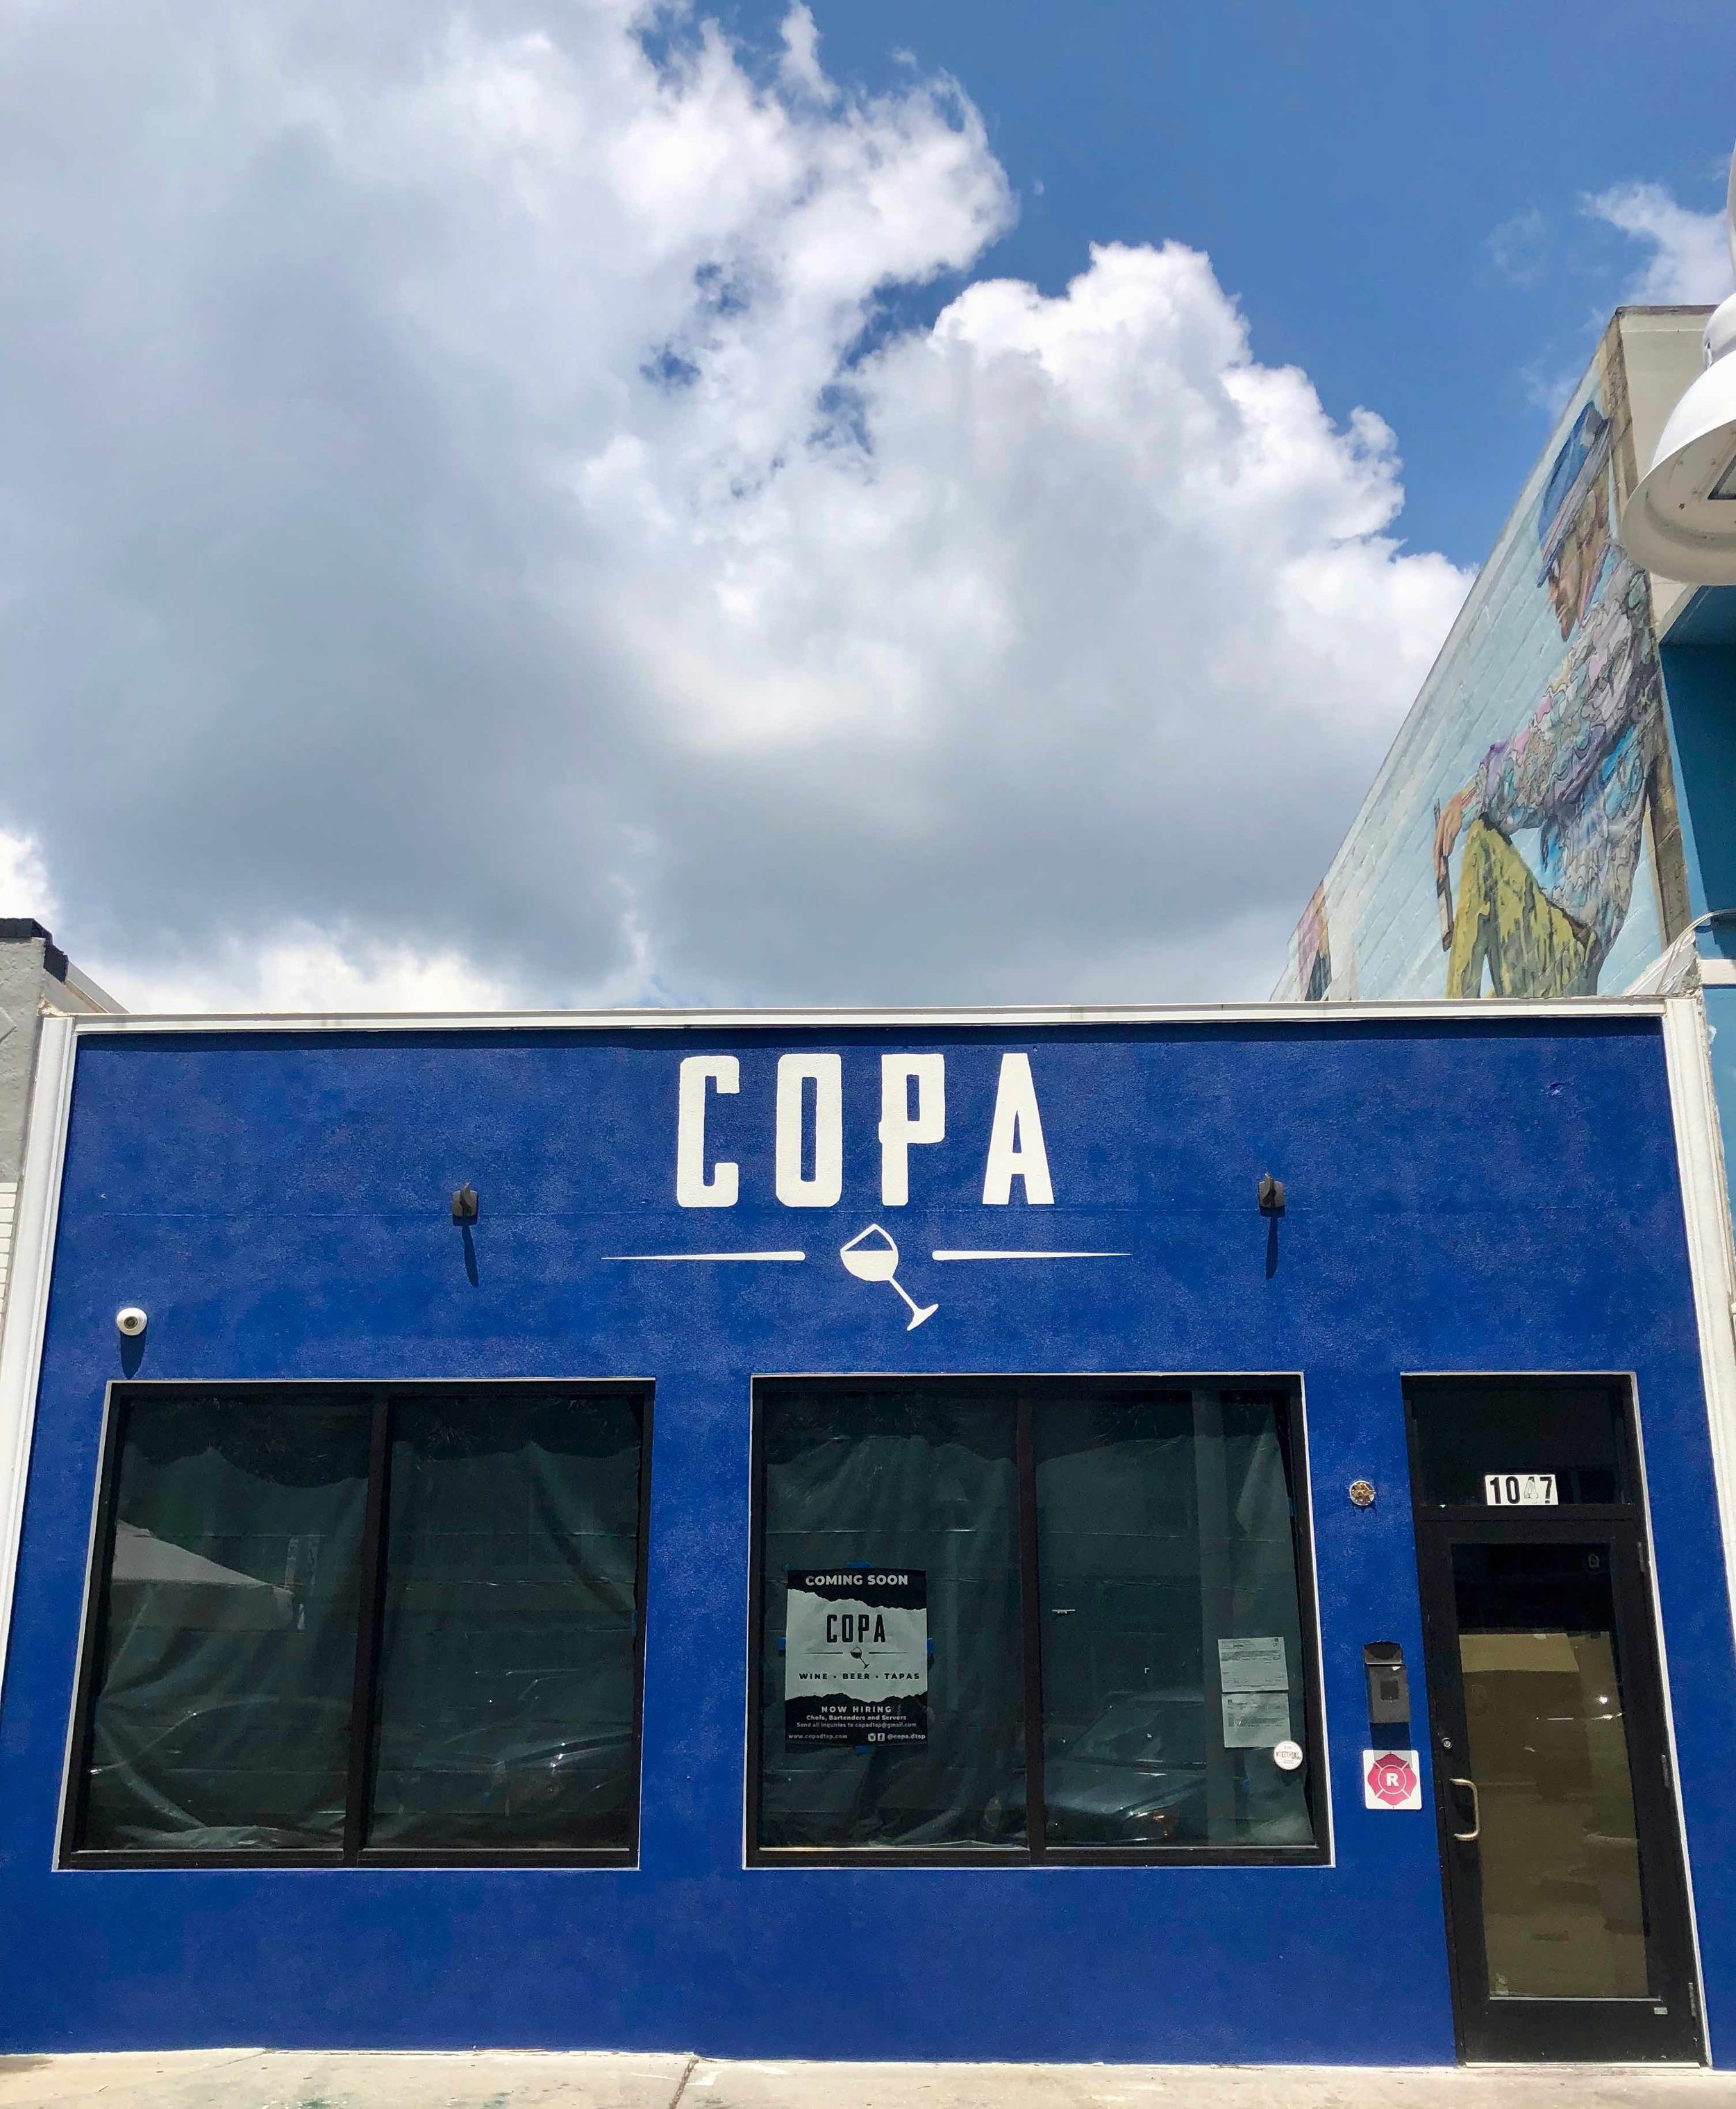 Copa will be located at 1047 Central Avenue, formerly Genaro's Cafe